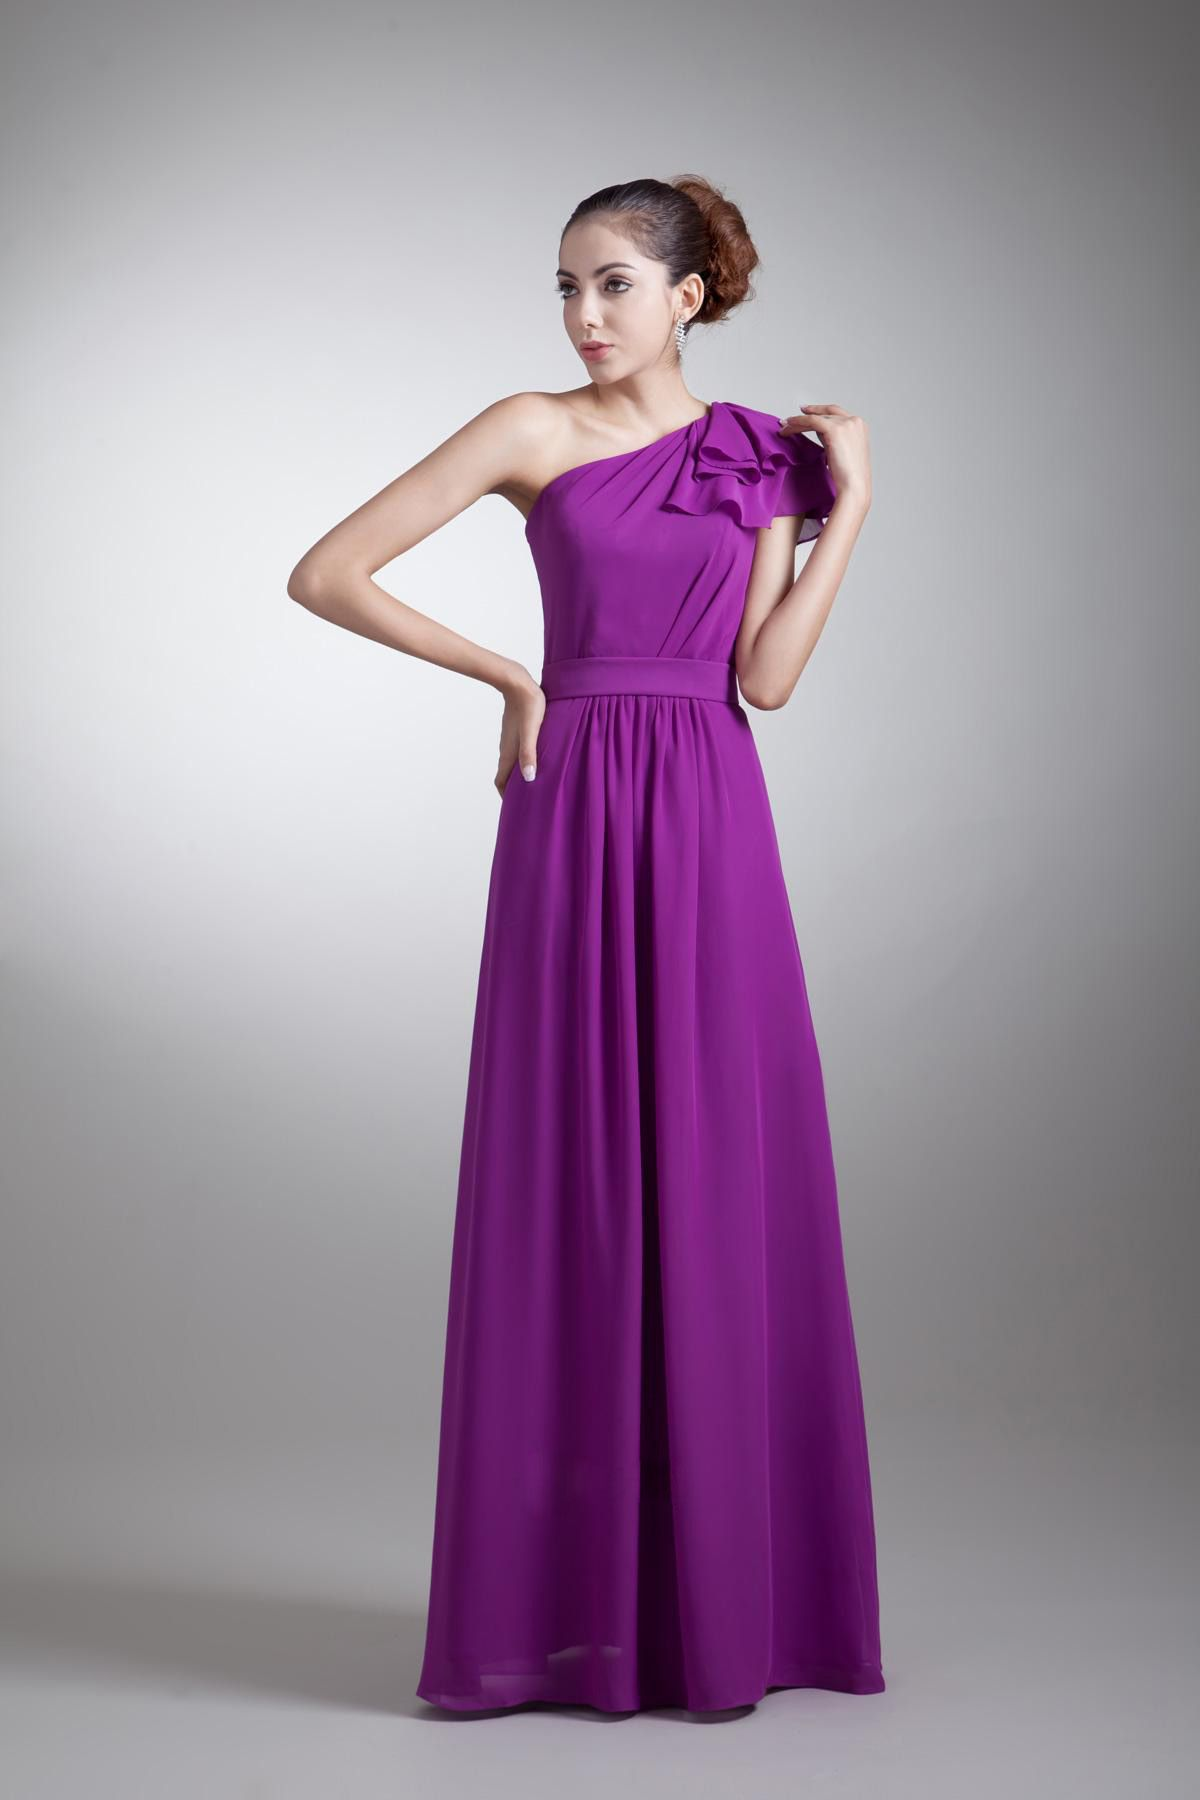 Long Purple Bridesmaid Dresses Cheap Choice Image - Braidsmaid Dress ...